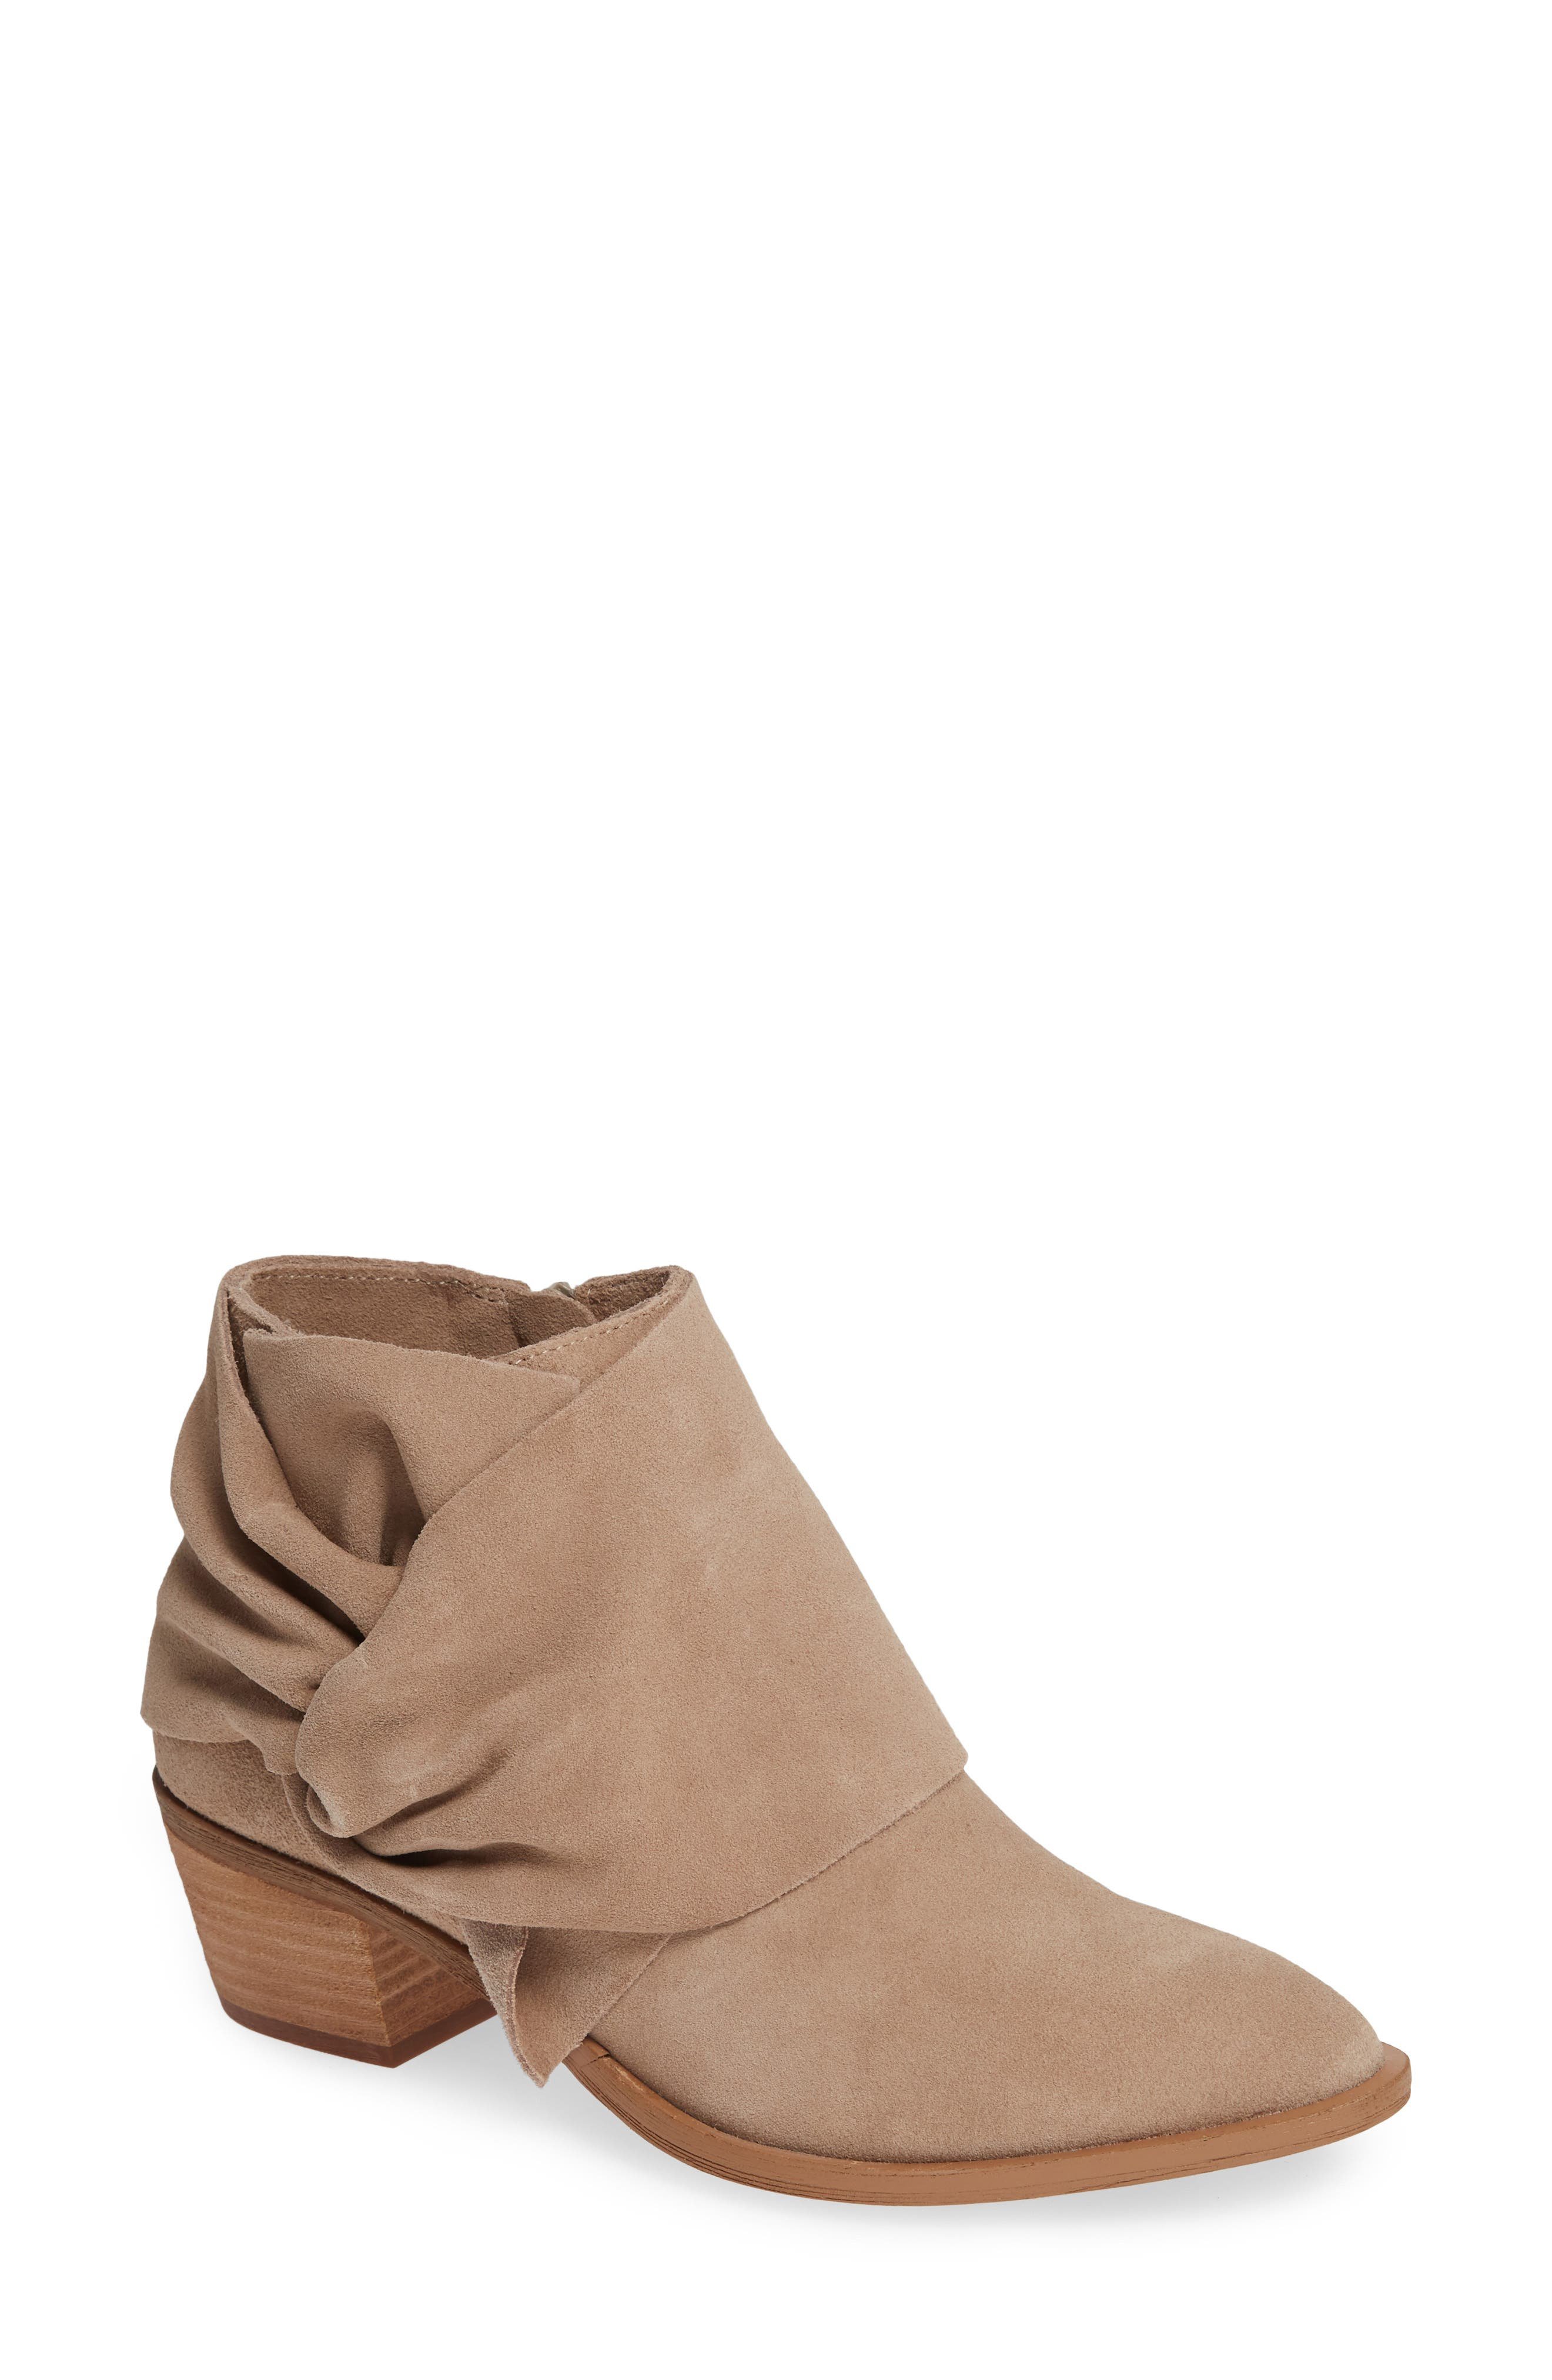 Natalyia Bootie,                             Main thumbnail 1, color,                             WARM TAUPE SUEDE